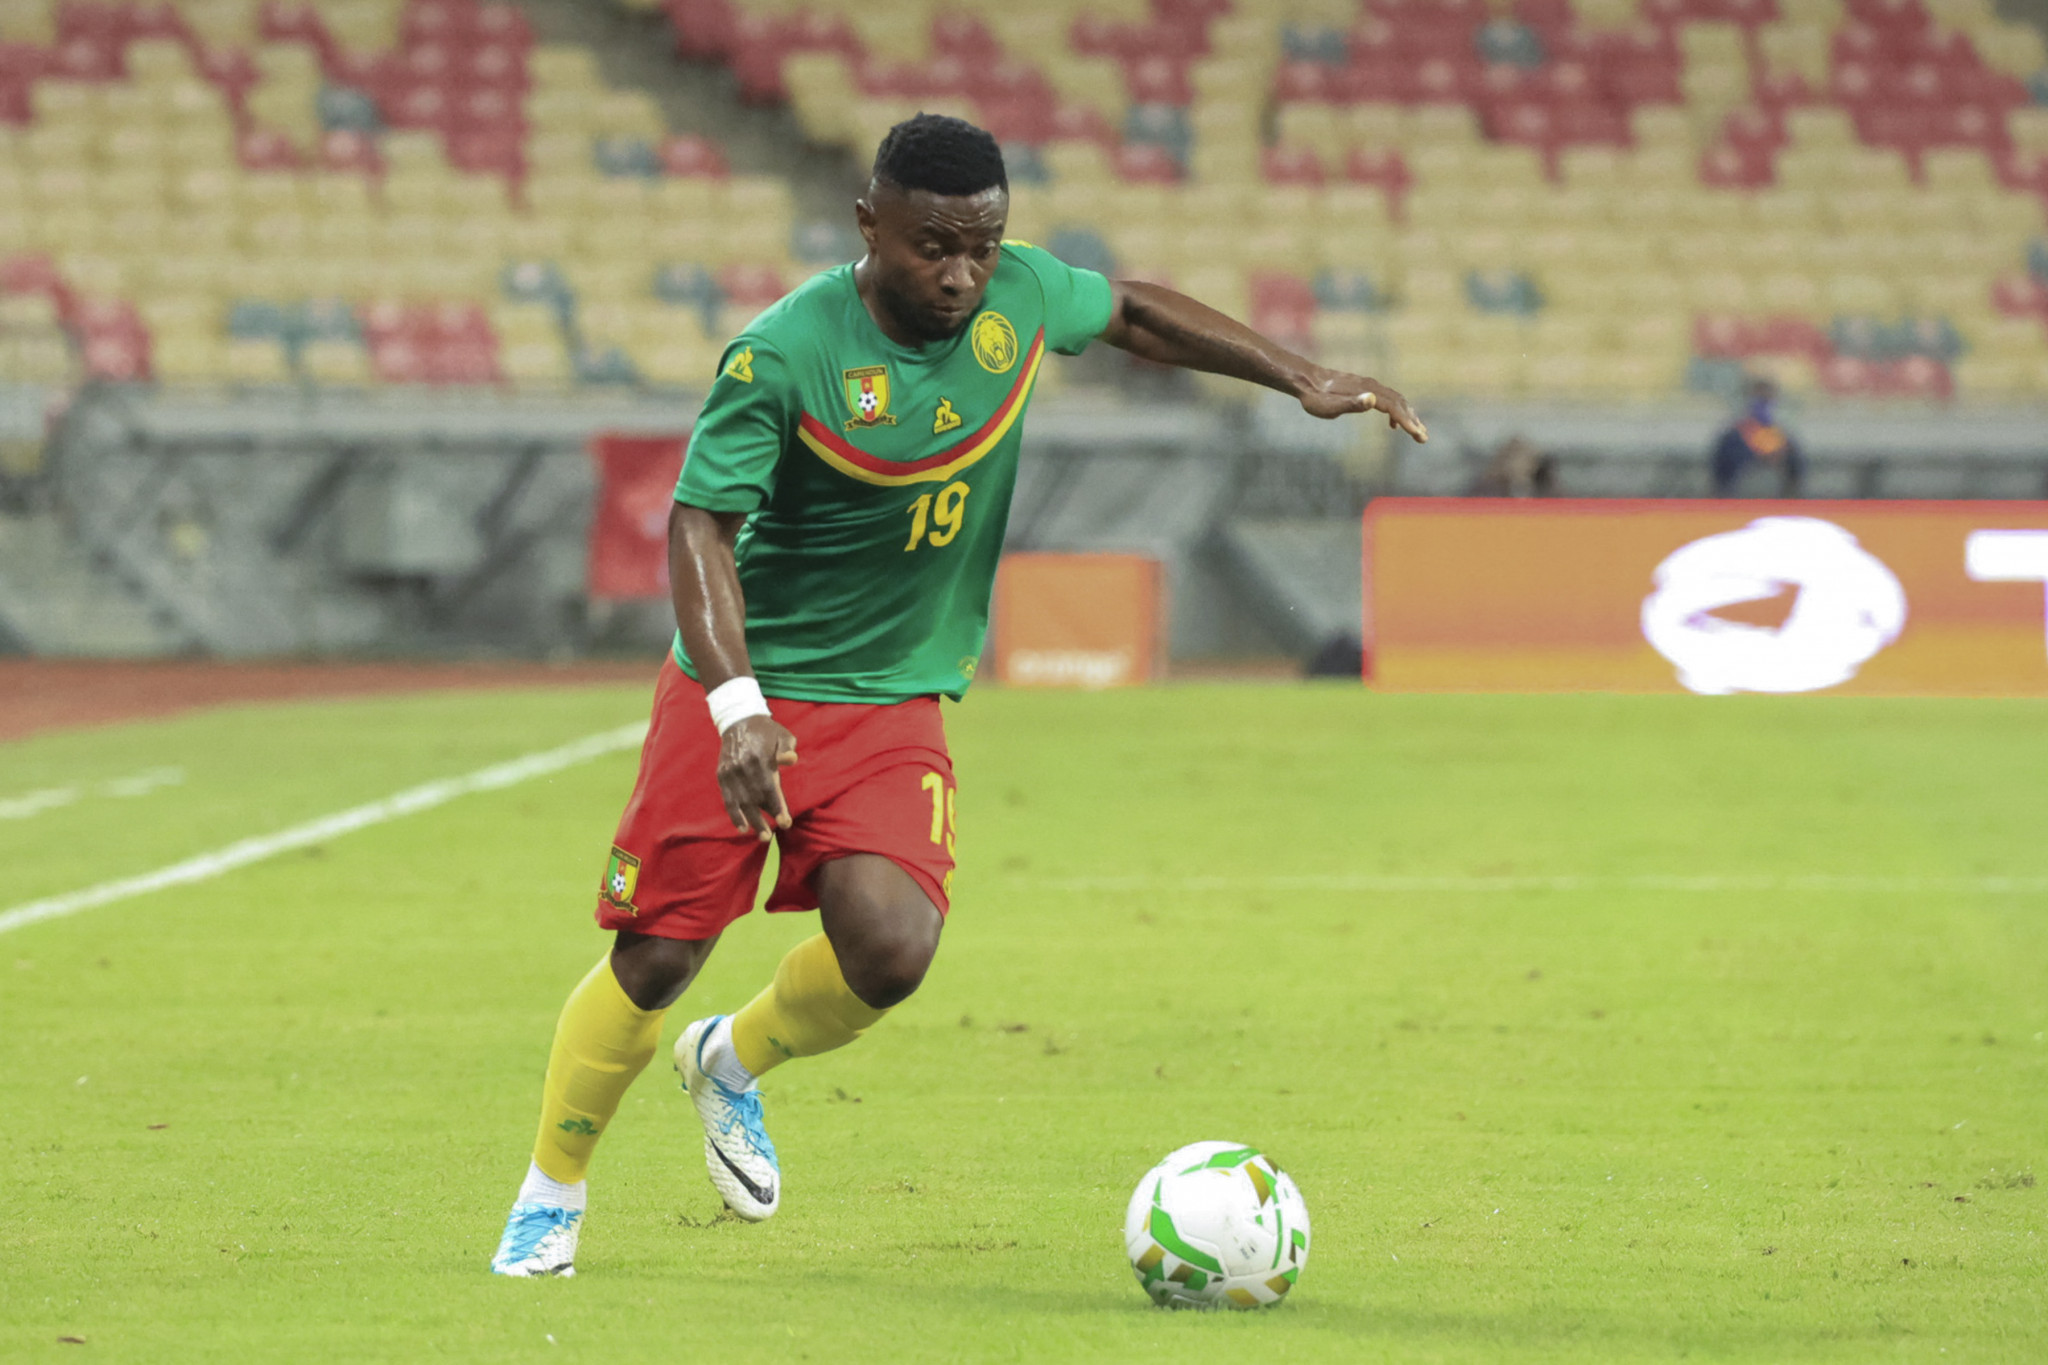 CAF confirms dates for rescheduled Africa Cup of Nations in Cameroon